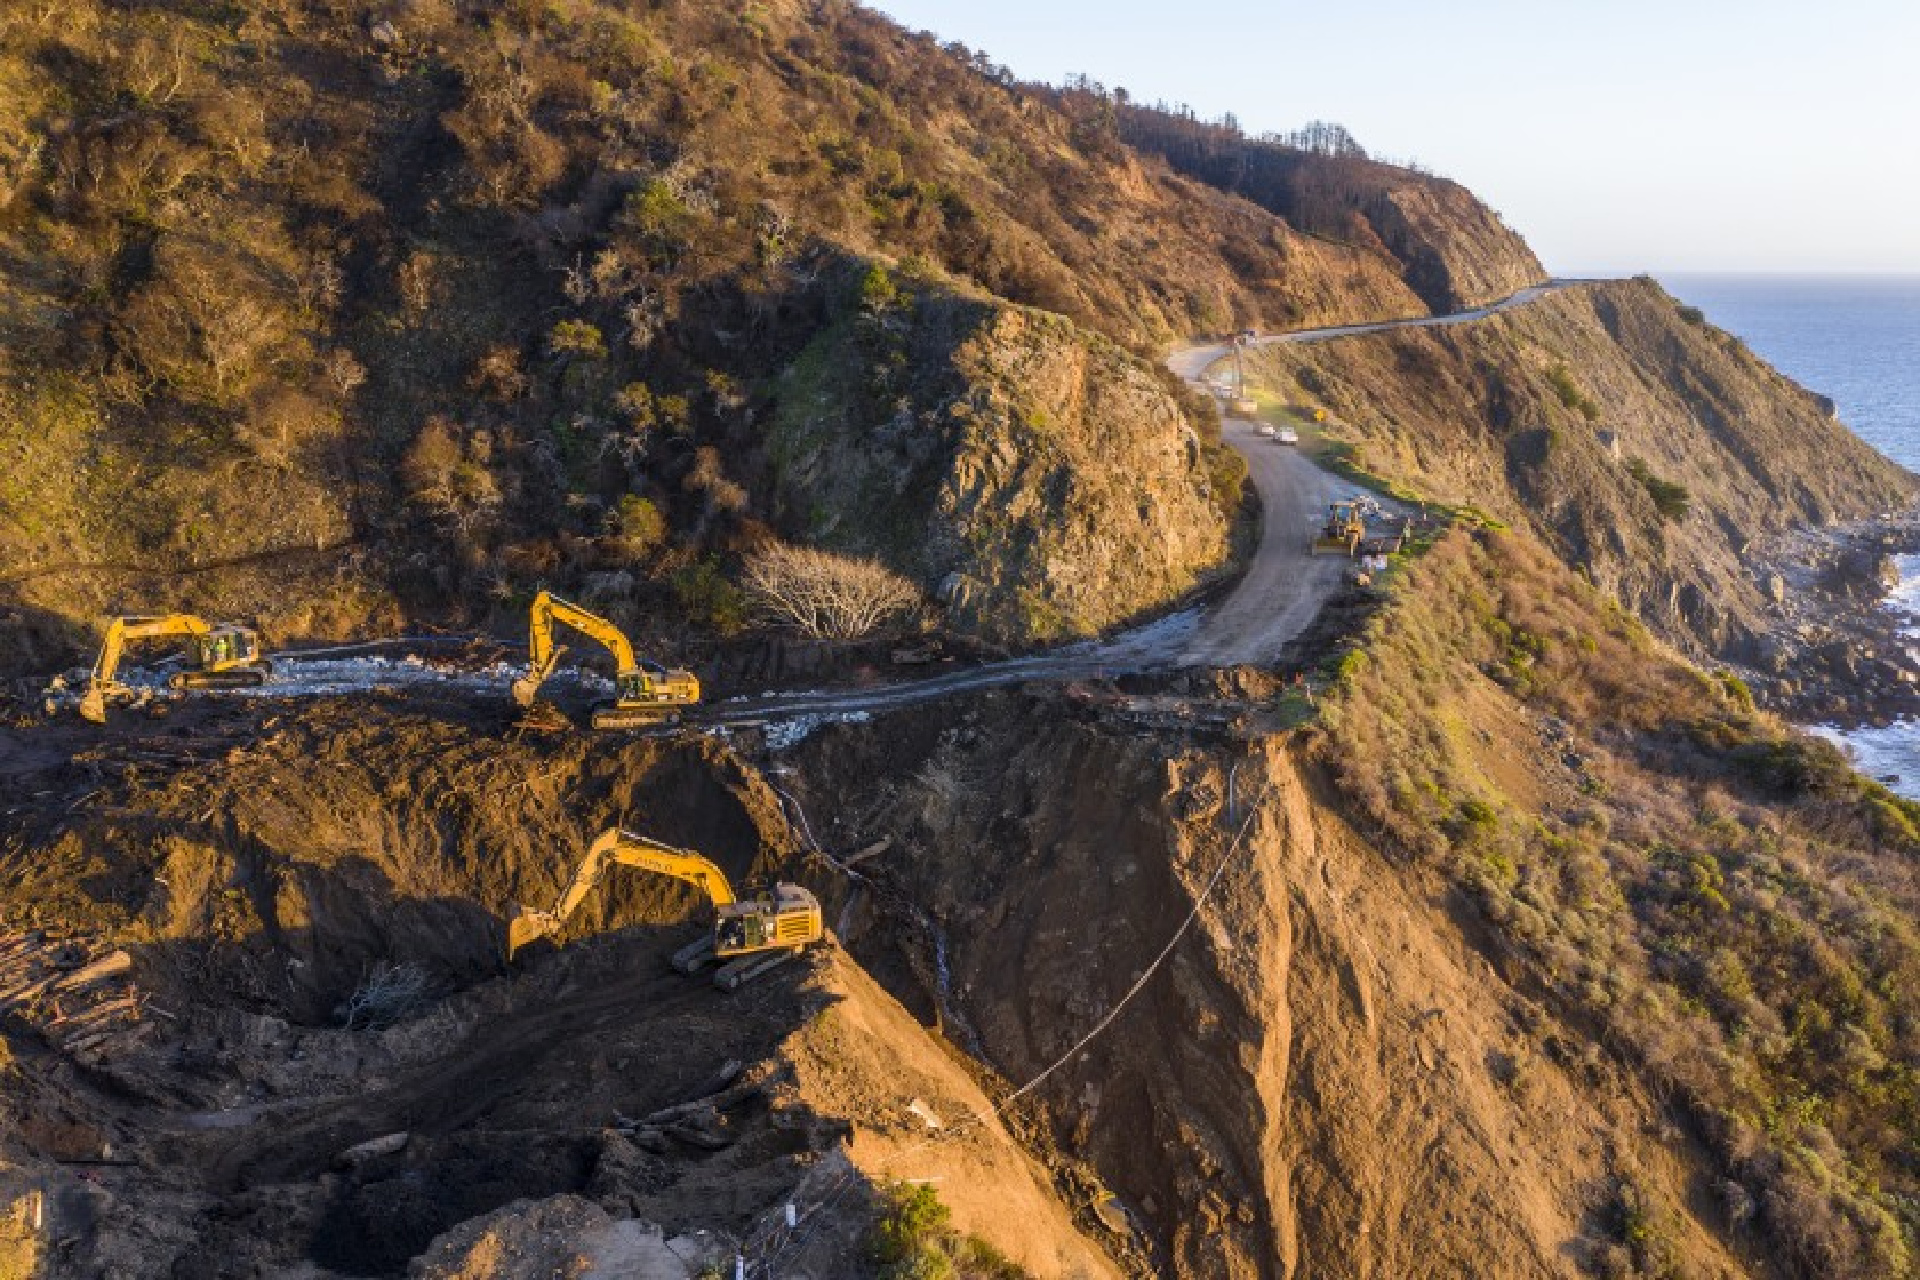 Crews dig debris from a washed-out section of Highway 1 at Rat Creek, south of Big Sur, on Feb. 10. (Robert Gauthier / Los Angeles Times)